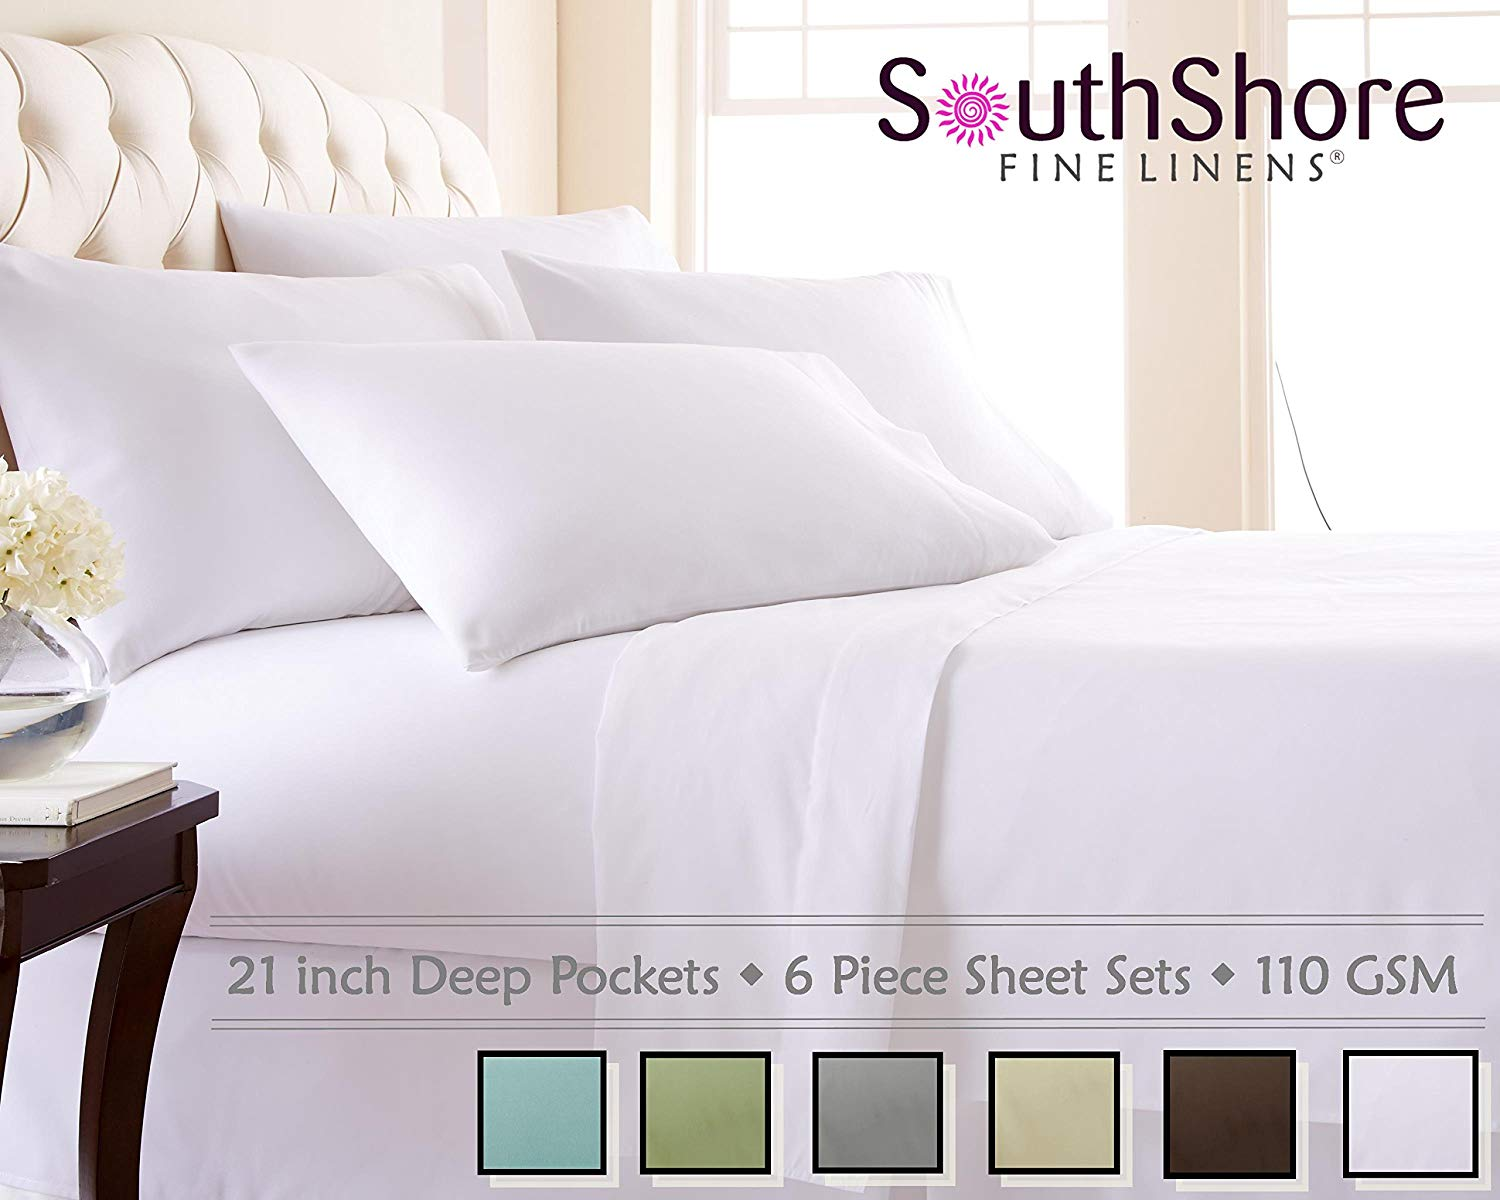 Contemporary Image Southshore Fine Linens Gsm Microfiber Sheet Set Threadcount Sheets Thread Count Sheets Picks Cons 2018 Pros Polyester Microfiber Sheets Brushed Microfiber Sheets Pros Cons houzz-03 Microfiber Sheets Pros And Cons